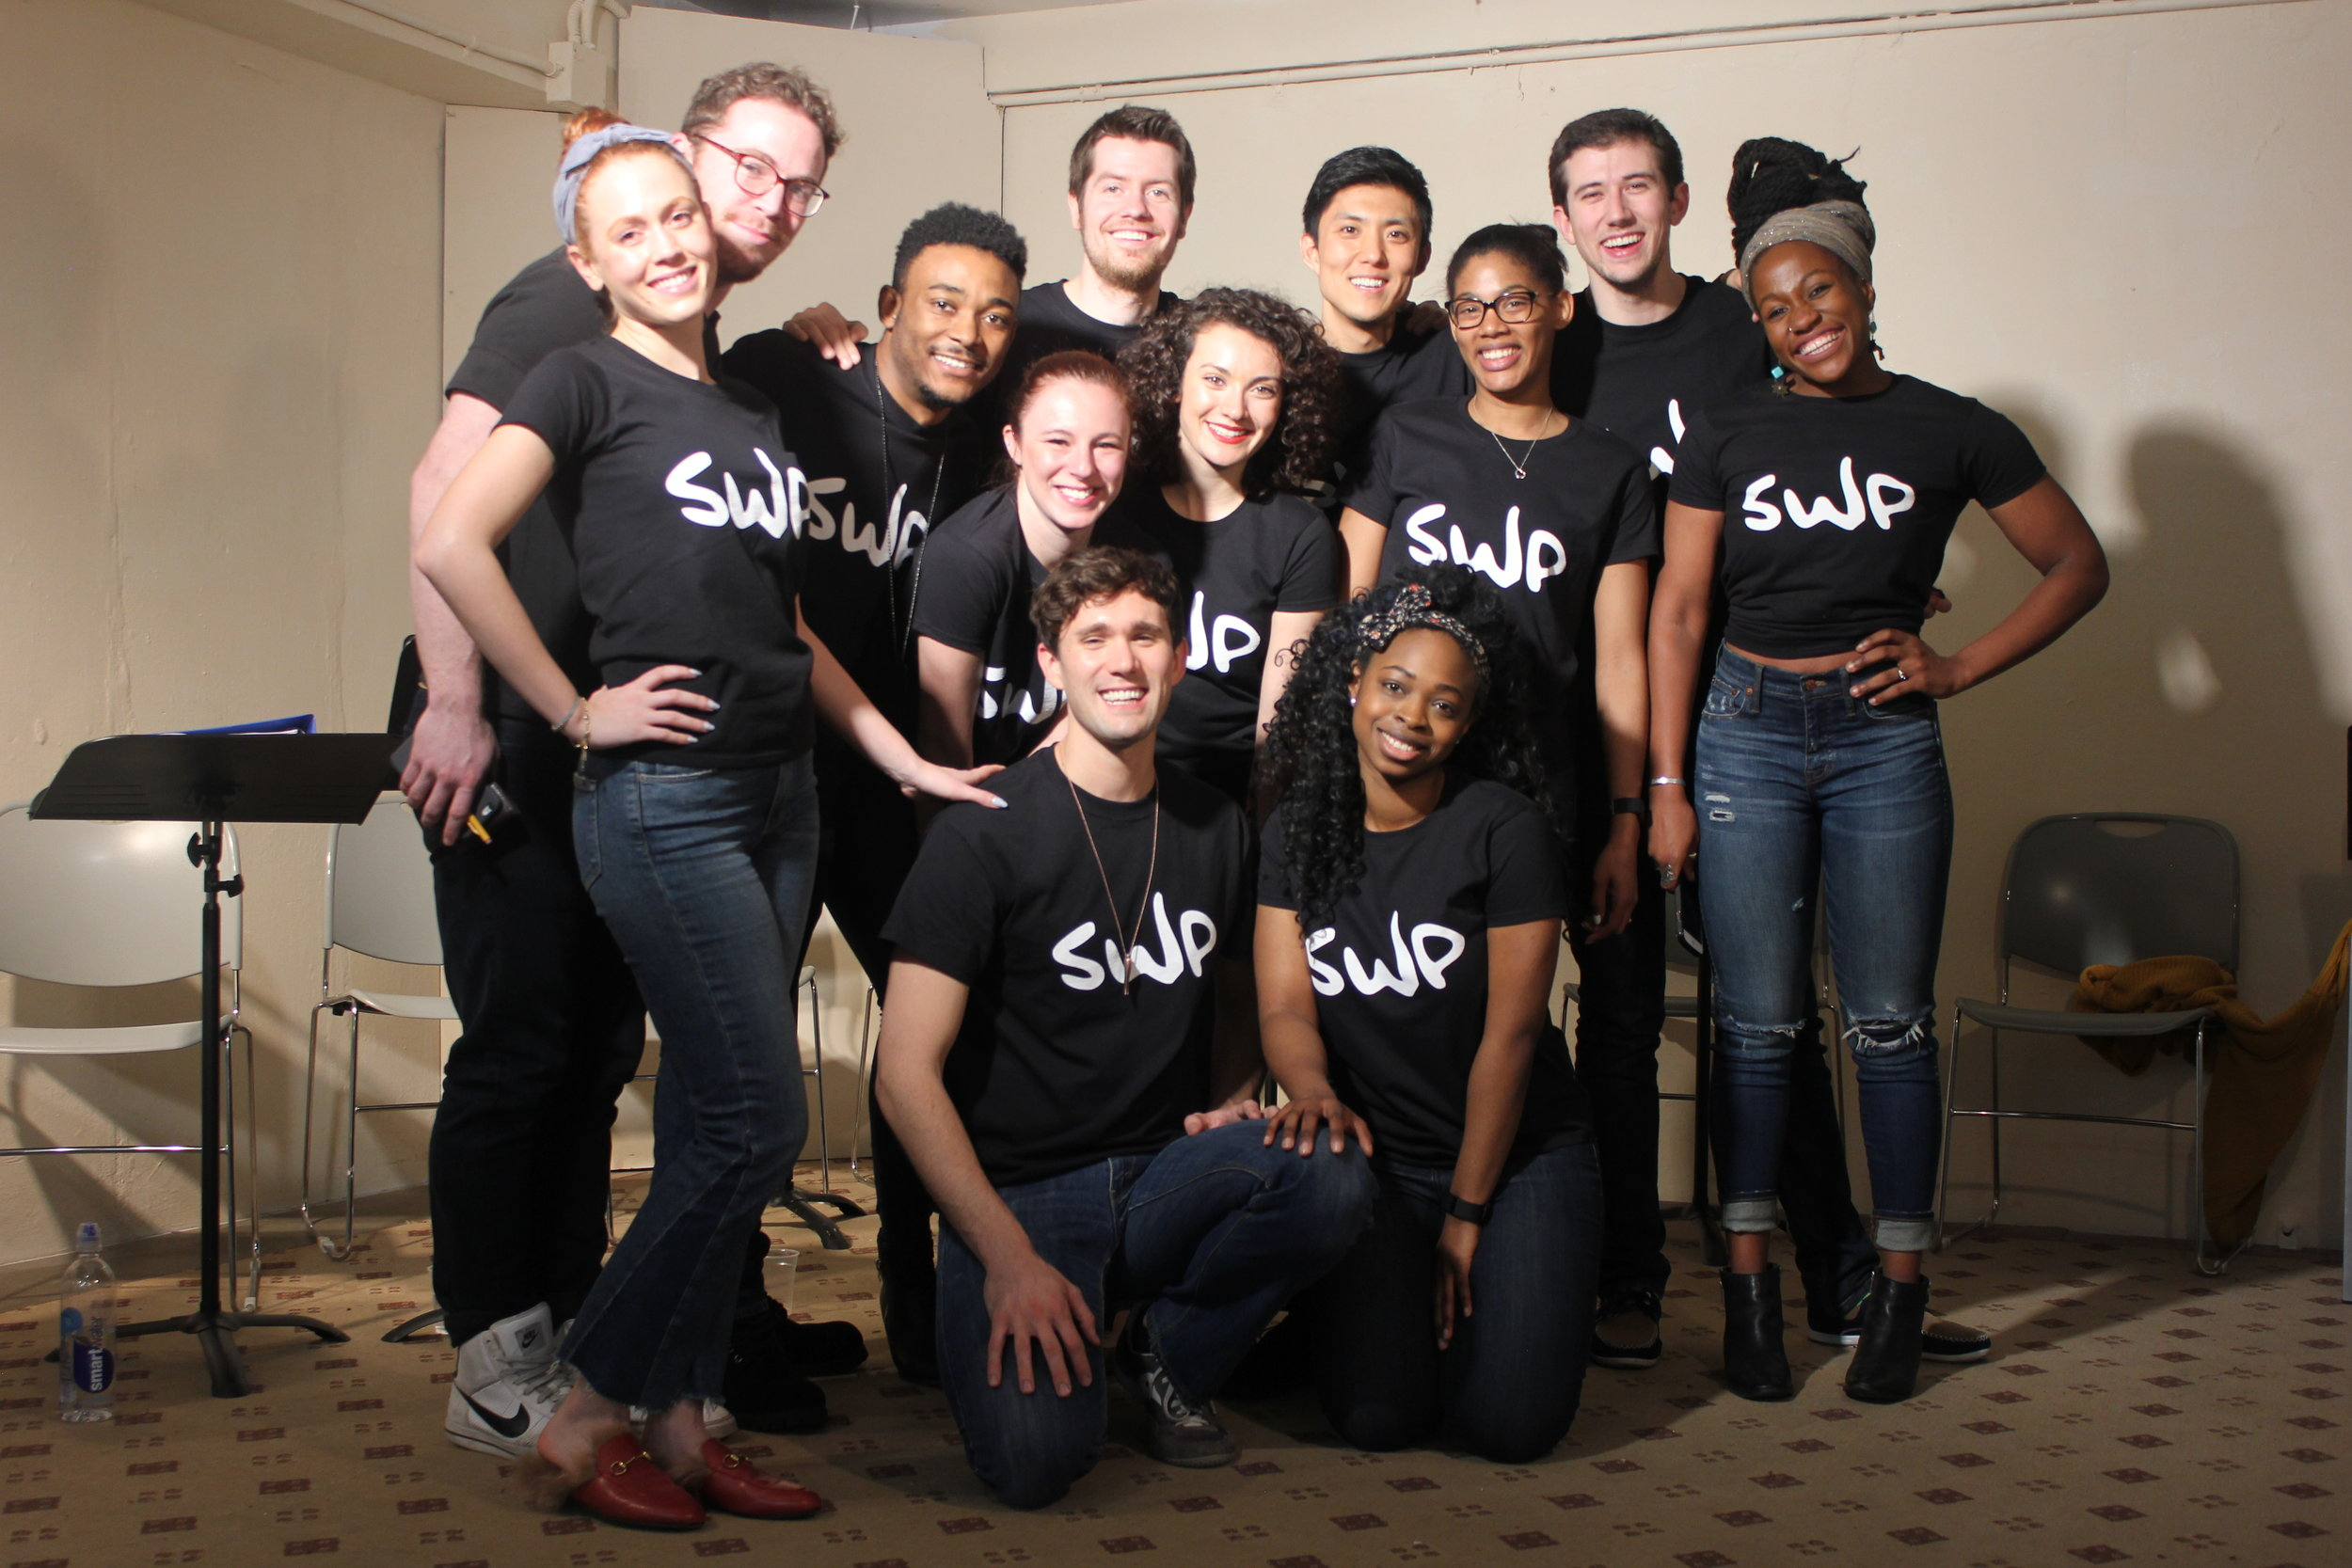 The Squeaky Wheelz Ensemble with guest artist and co-playwright of  Someone Dies at the End Matthew Consalvo. (Back Left to Right)Leah Bezozo, Matthew Consalvo, Freddie Fulton, Luke Hofmaier, Fang Du, Eddie Powers. (Middle Left to Right) Samantha Nicole Simone, Amy Miyako Williams, Tiffany Small, Hope Ruffin Ward. (Front Left to Right) Justin Michael Cooke & Alinca Hamilton.